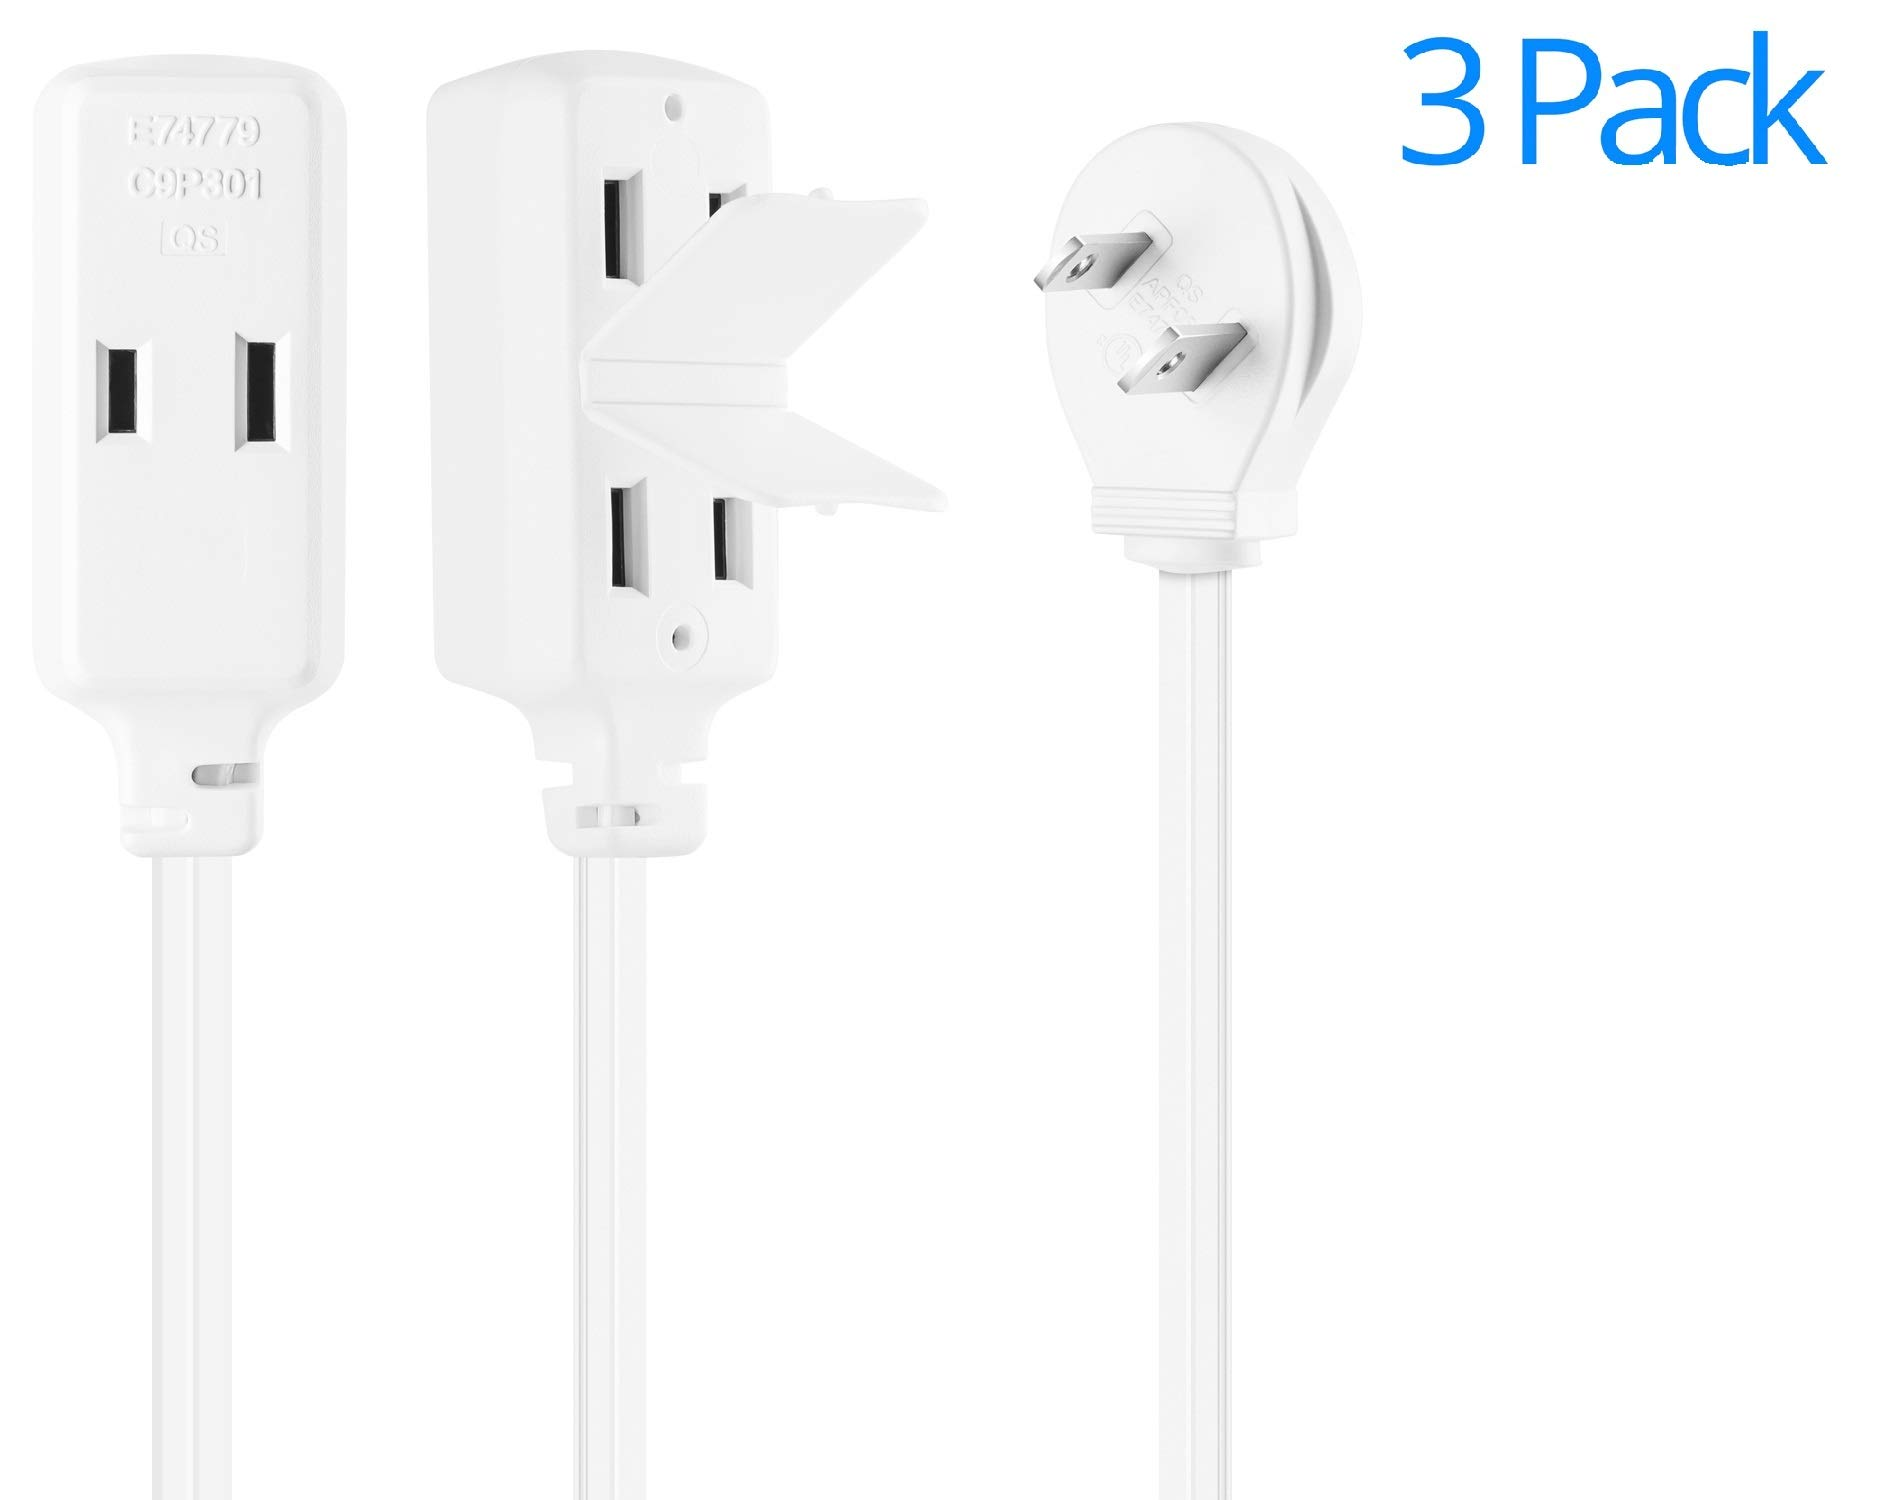 Maximm Cable 3 Foot Flat Plug Extension Cord/Wire, Multi Outlet - Angled Plug Extension Cord with Safety Water Proof Cover - 3 Pack - White